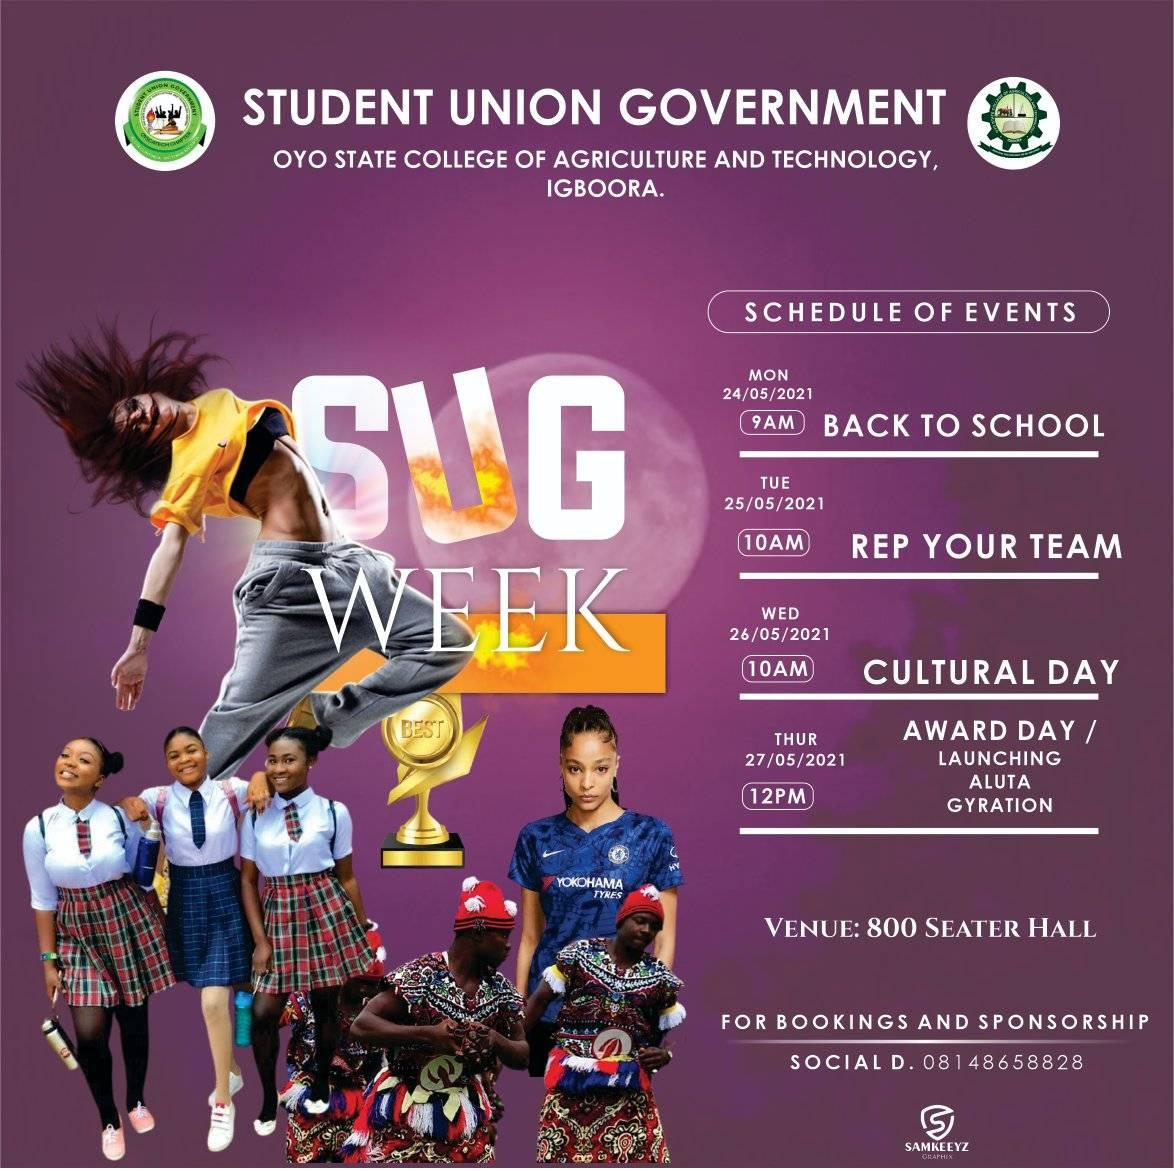 OYSCATECH SUG Week Schedule of Events 2021